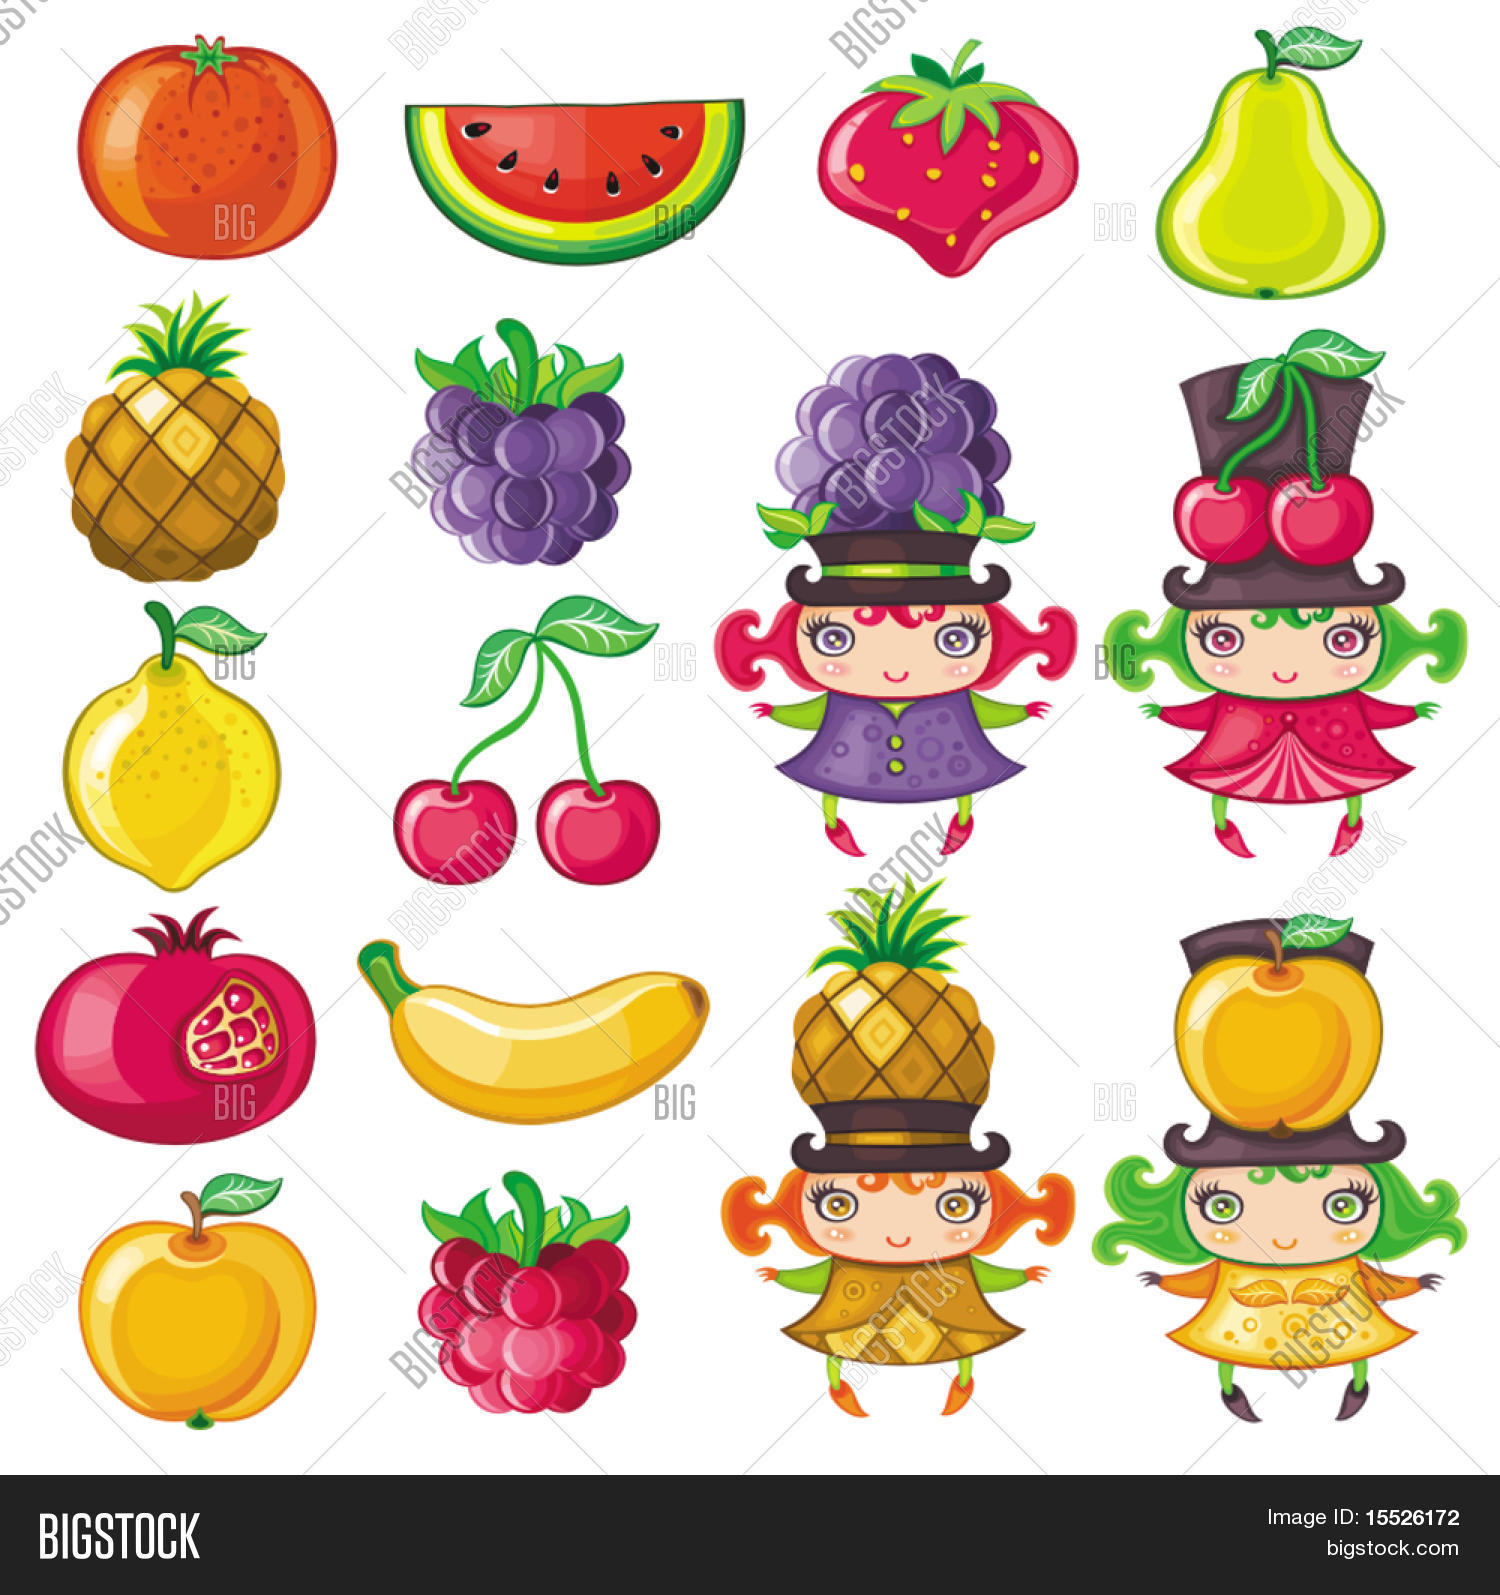 apple,banana,beauty,berry,blackberry,bright,cherry,children,citrus,clipart,collection,colorful,day,delicious,dessert,diet,exotic,food,fresh,freshness,fruit,girl,group,hat,healthy,icon,illustration,isolated,juice,juicy,kid,lemon,natural,nature,nectar,orange,pear,pineapple,pomegranate,raspberry,set,strawberry,summer,sweet,tangerine,tropical,vector,vitamins,watermelon,white